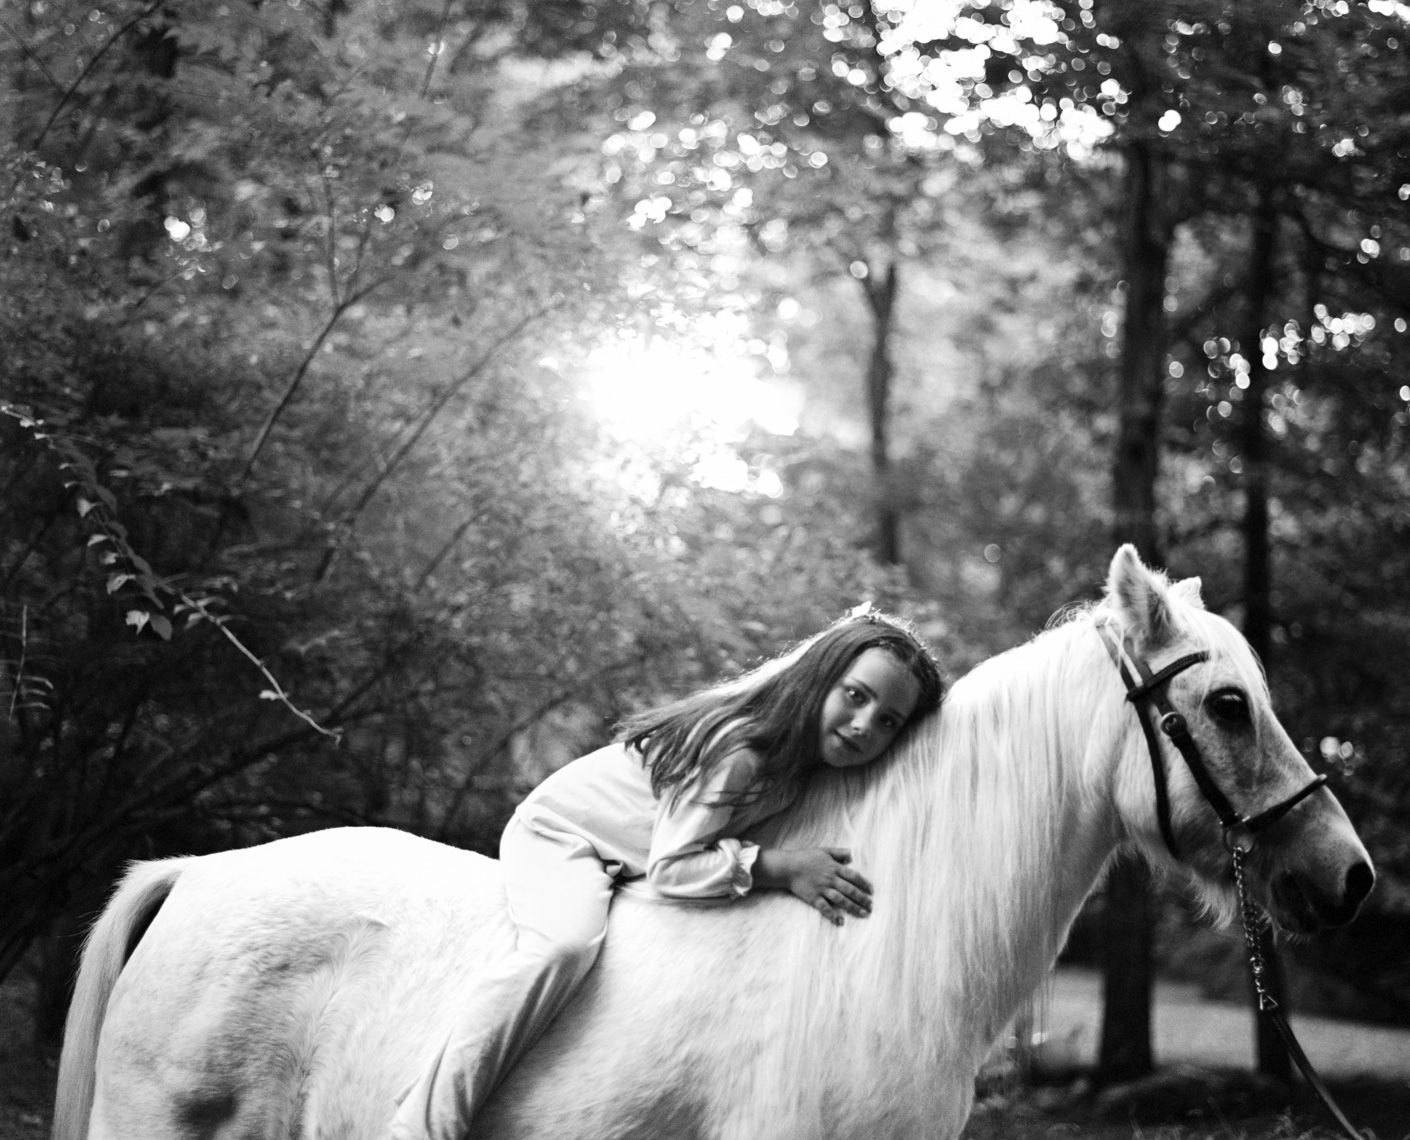 Girl riding white pony | Visual Storytelling Photographer